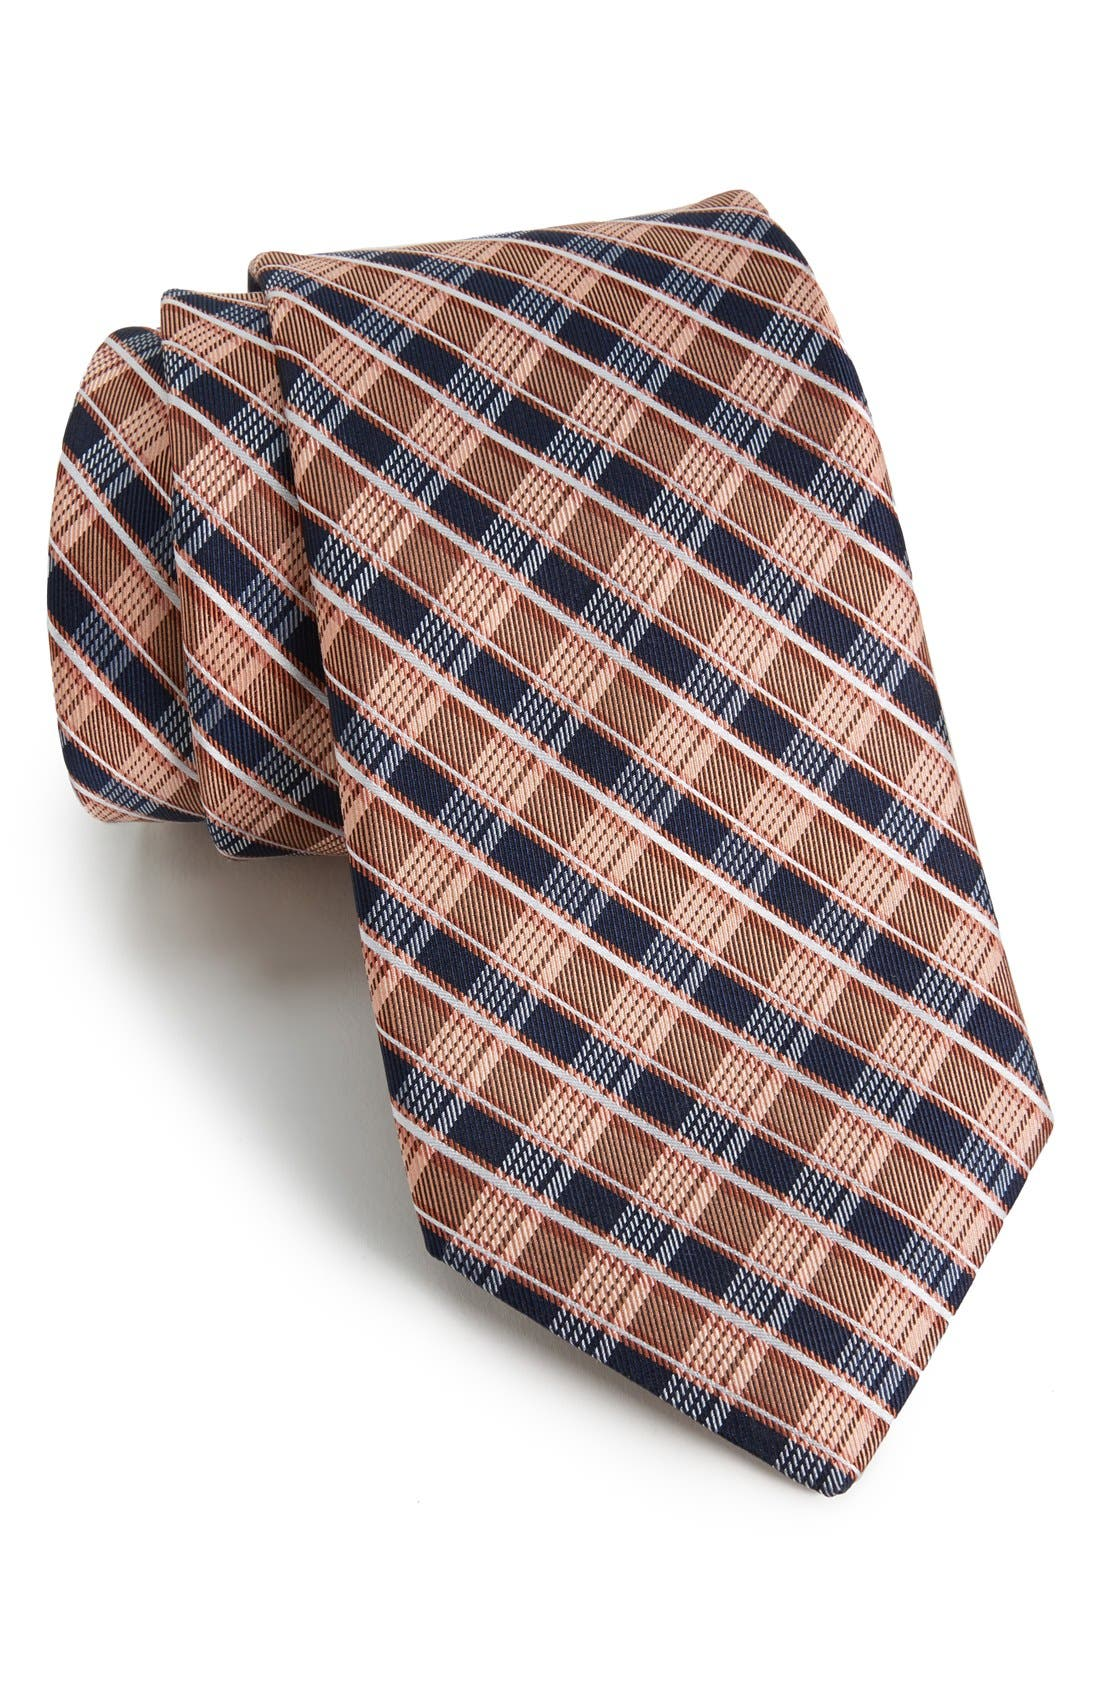 Alternate Image 1 Selected - Michael Kors Plaid Woven Silk Tie